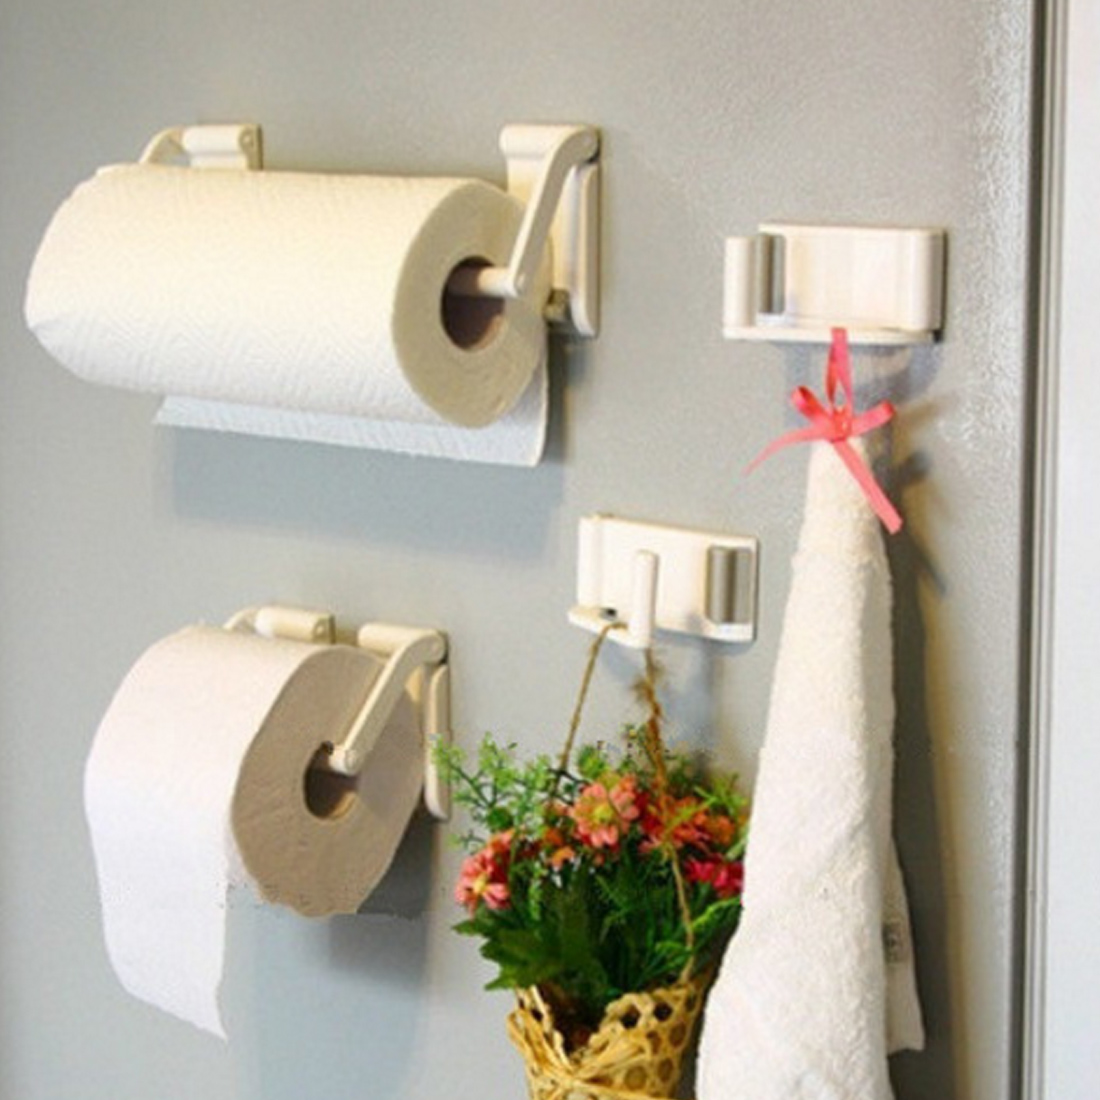 Bathroom Accessories Brands popular paper towel brands-buy cheap paper towel brands lots from